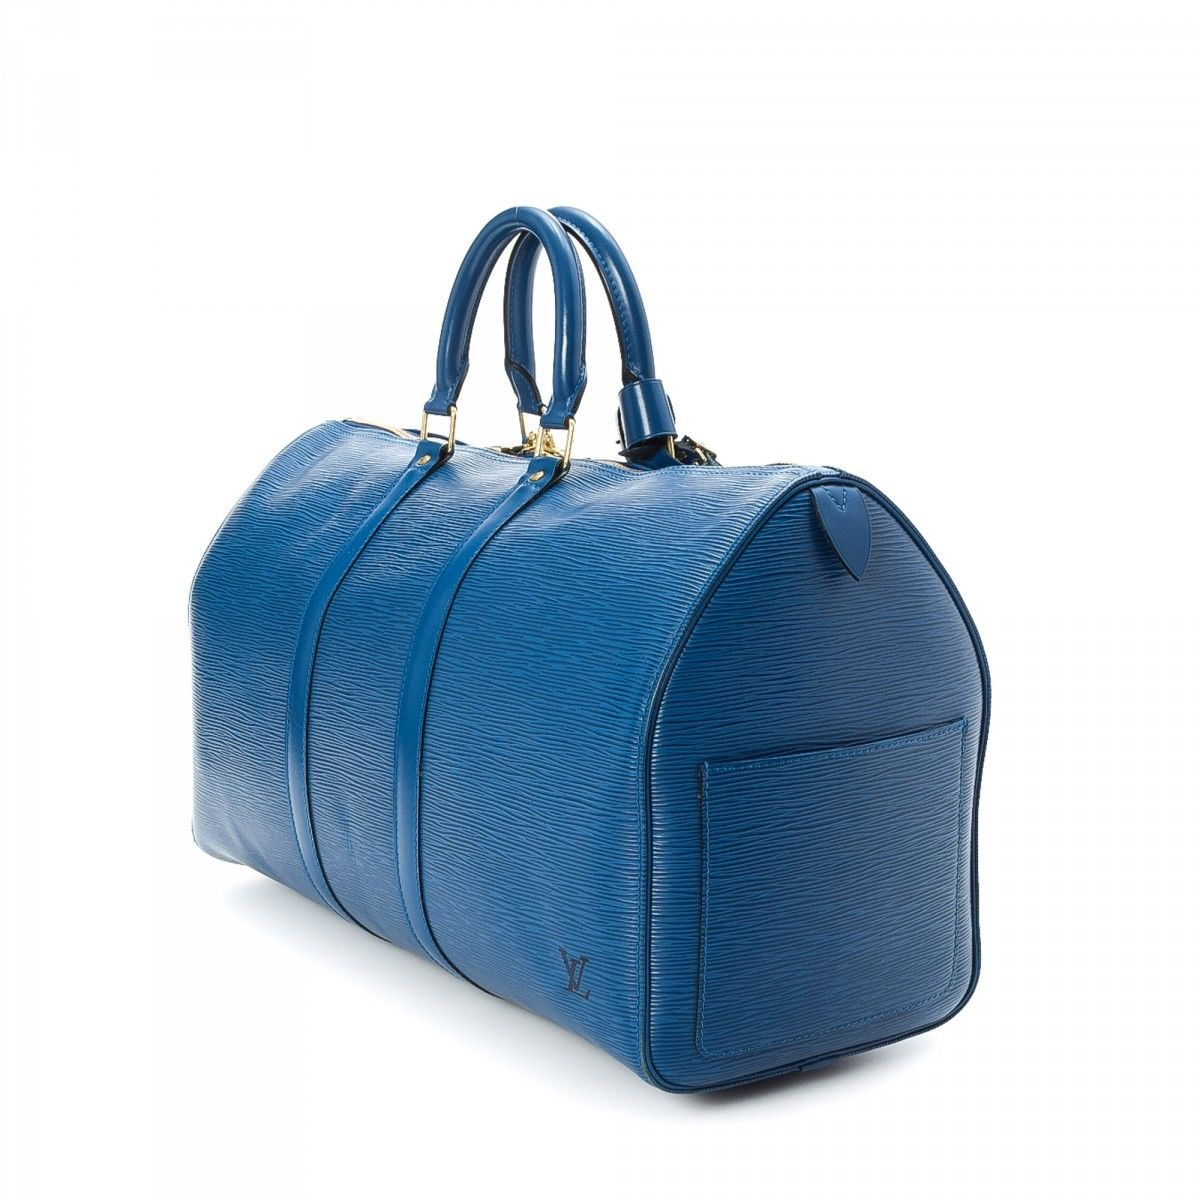 dc324b1ddcb1 Louis Vuitton Keepall 45 Epi Leather - LXRandCo - Pre-Owned Luxury ...